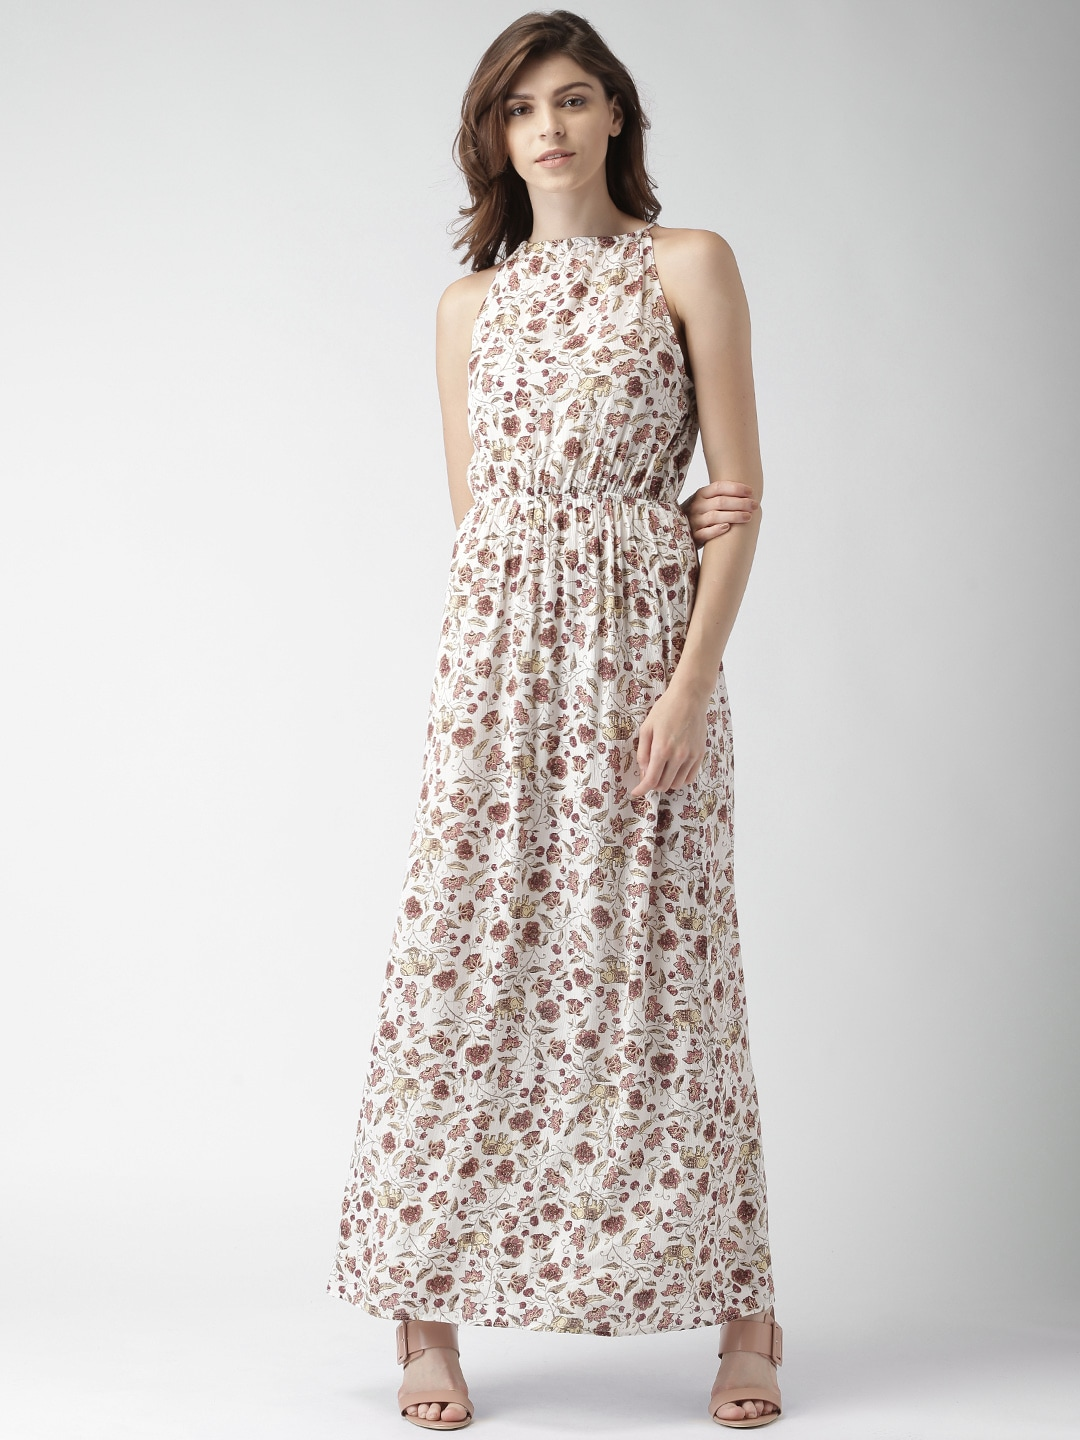 fb5a4740d42 Forever 21 Off White Dresses - Buy Forever 21 Off White Dresses online in  India